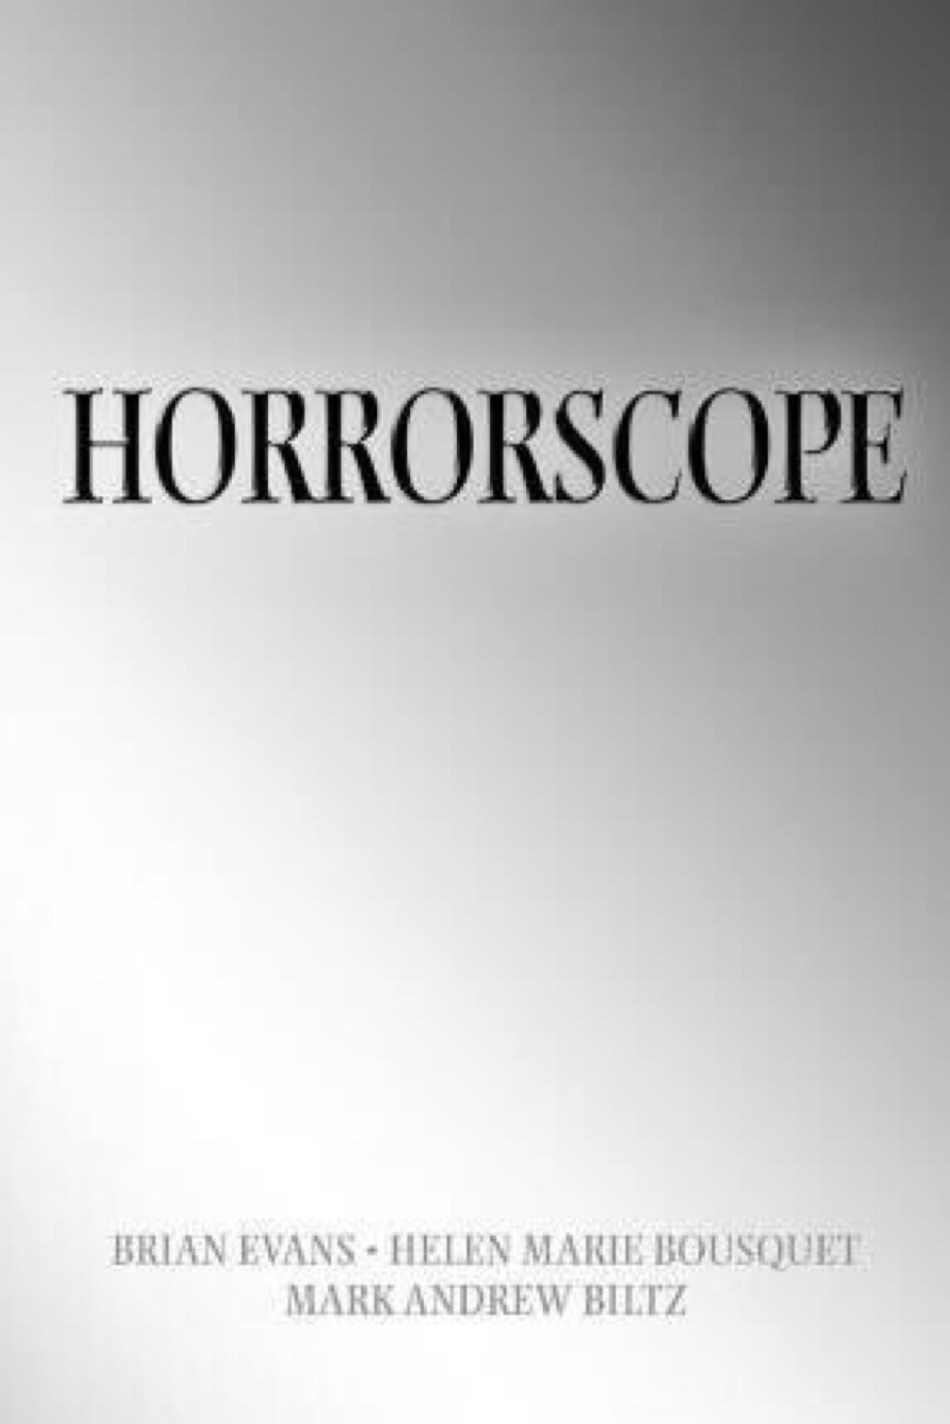 """""""Horrorscope,"""" the novel by Brian Evans, Helen Marie Bousquet, and Mark Andrew Biltz, lands a deal with Westwind Comics to adapt into a graphic novel. However plans are being developed for the story to be a lot more than that."""